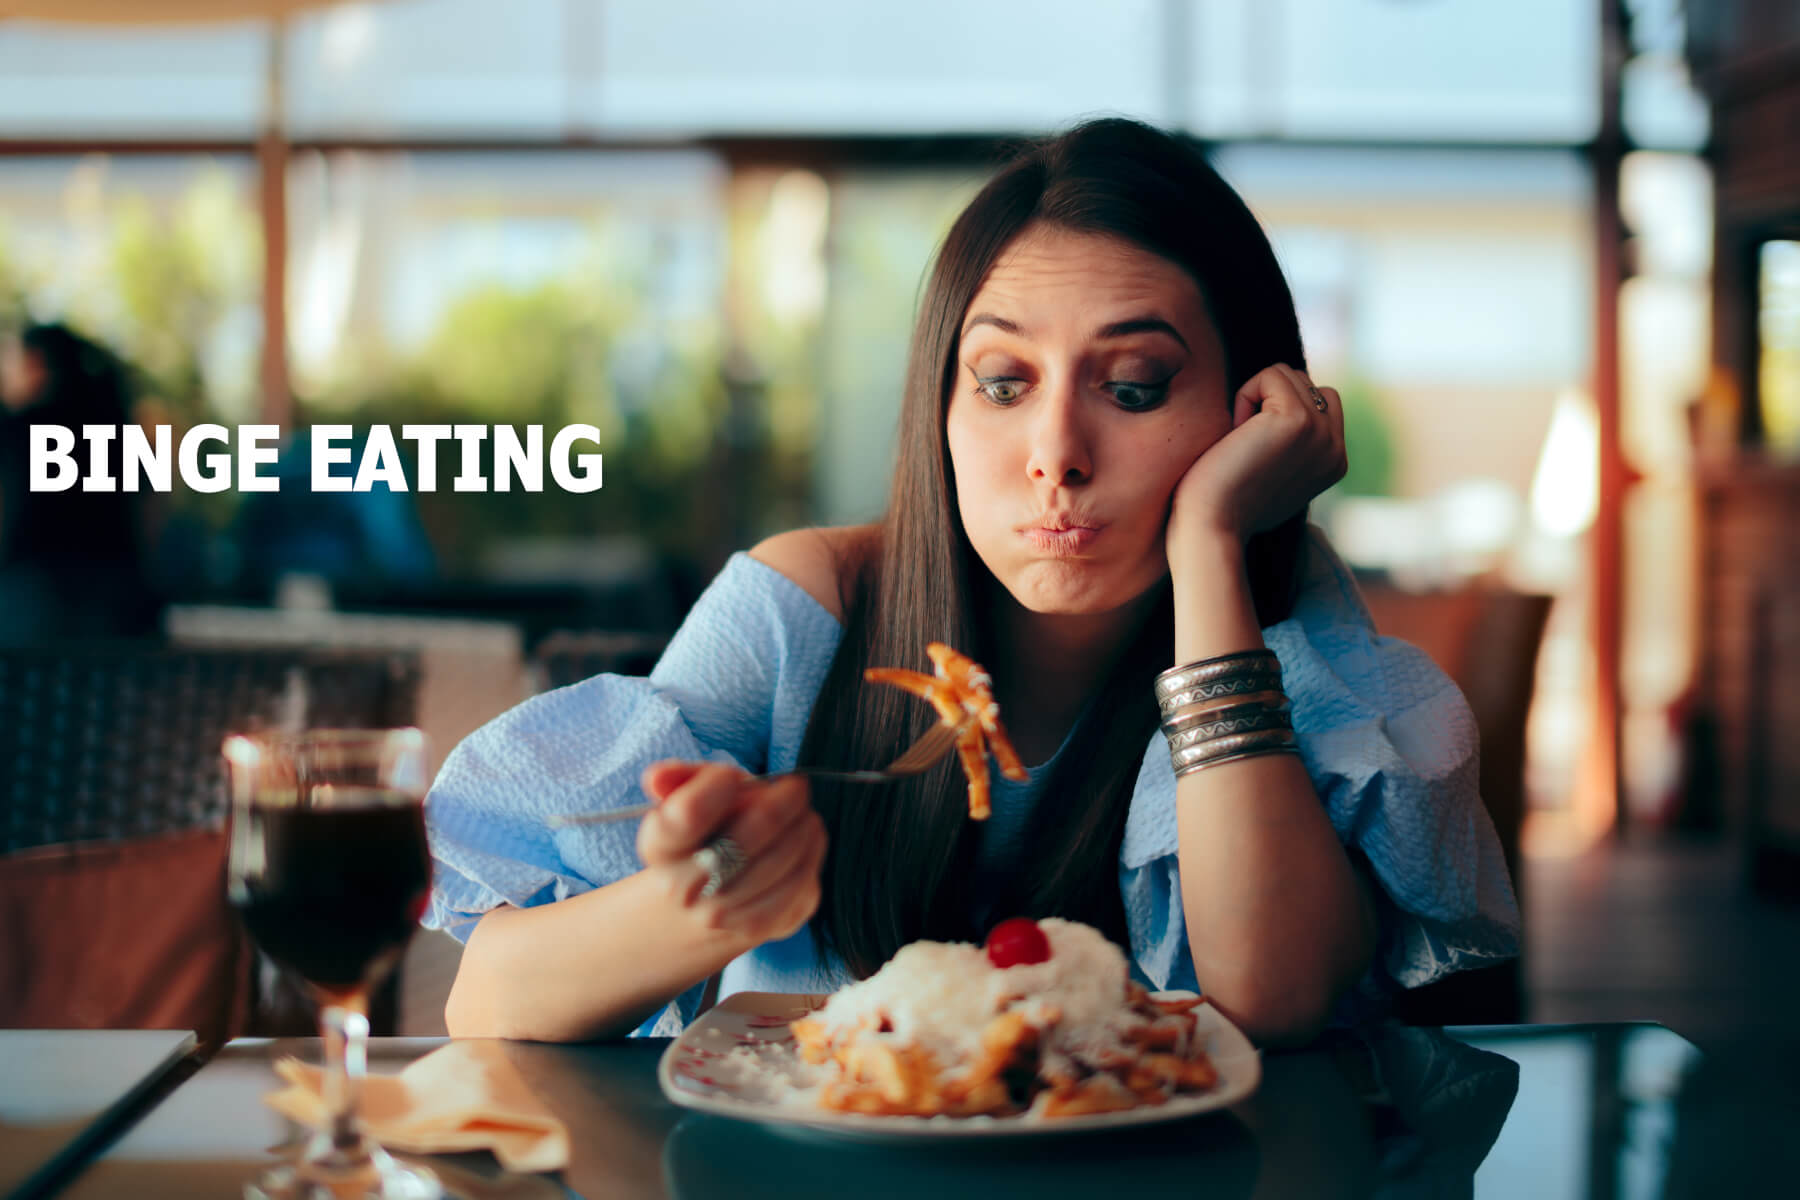 Mental Health Support For Bing Eating